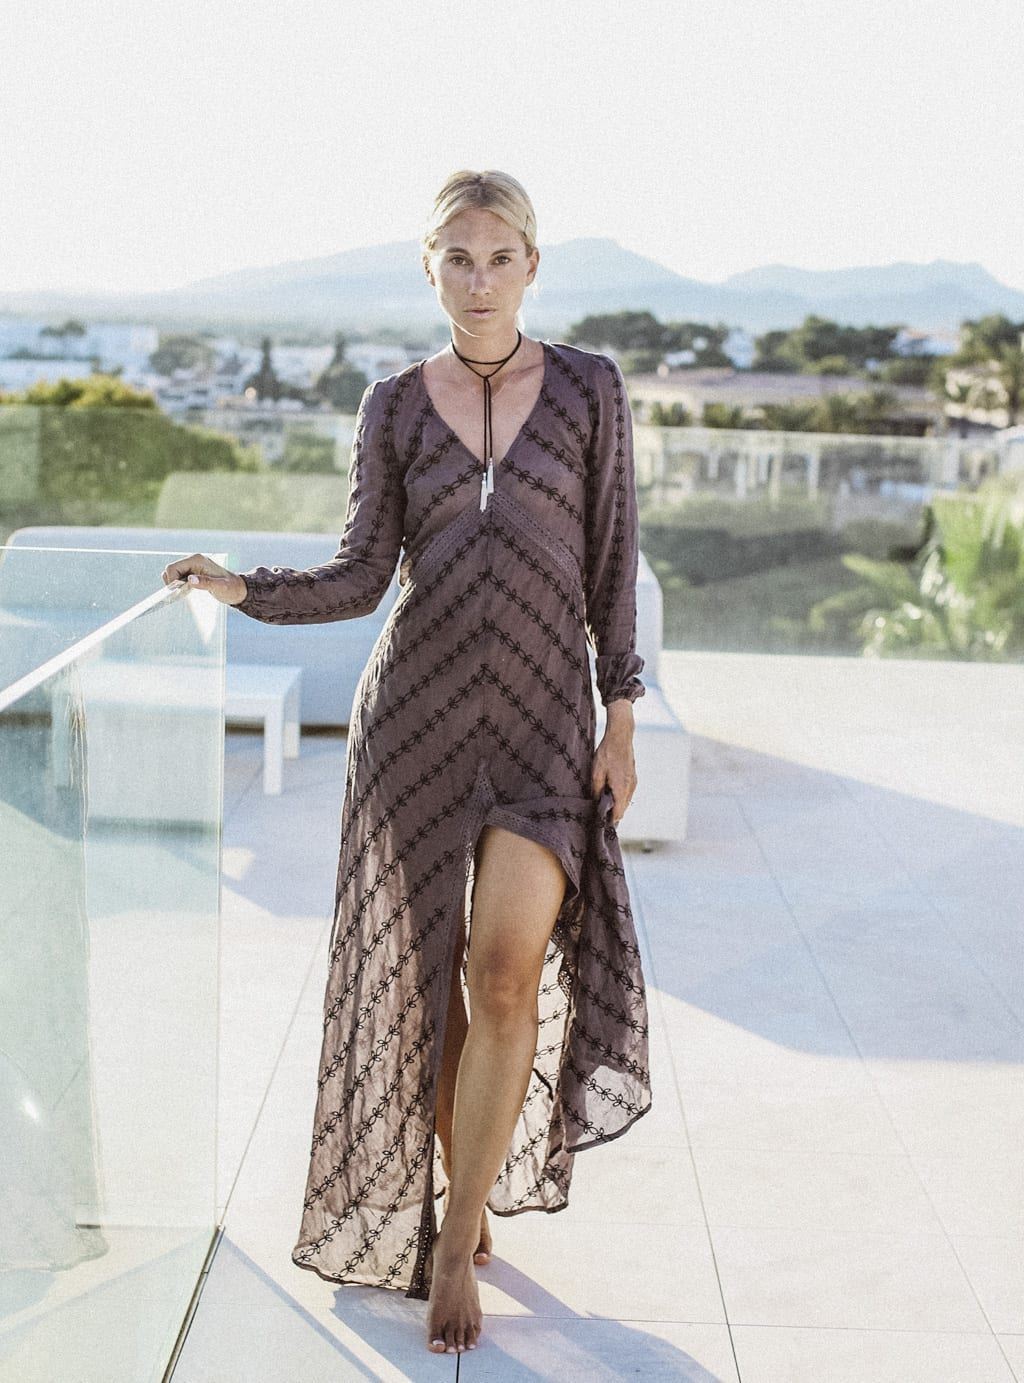 CK-1606-Mallorca-Island-Spain-Luxury-Holiday-Blogger-Beach-Outfit-Style-Fashion-Baleares-1013